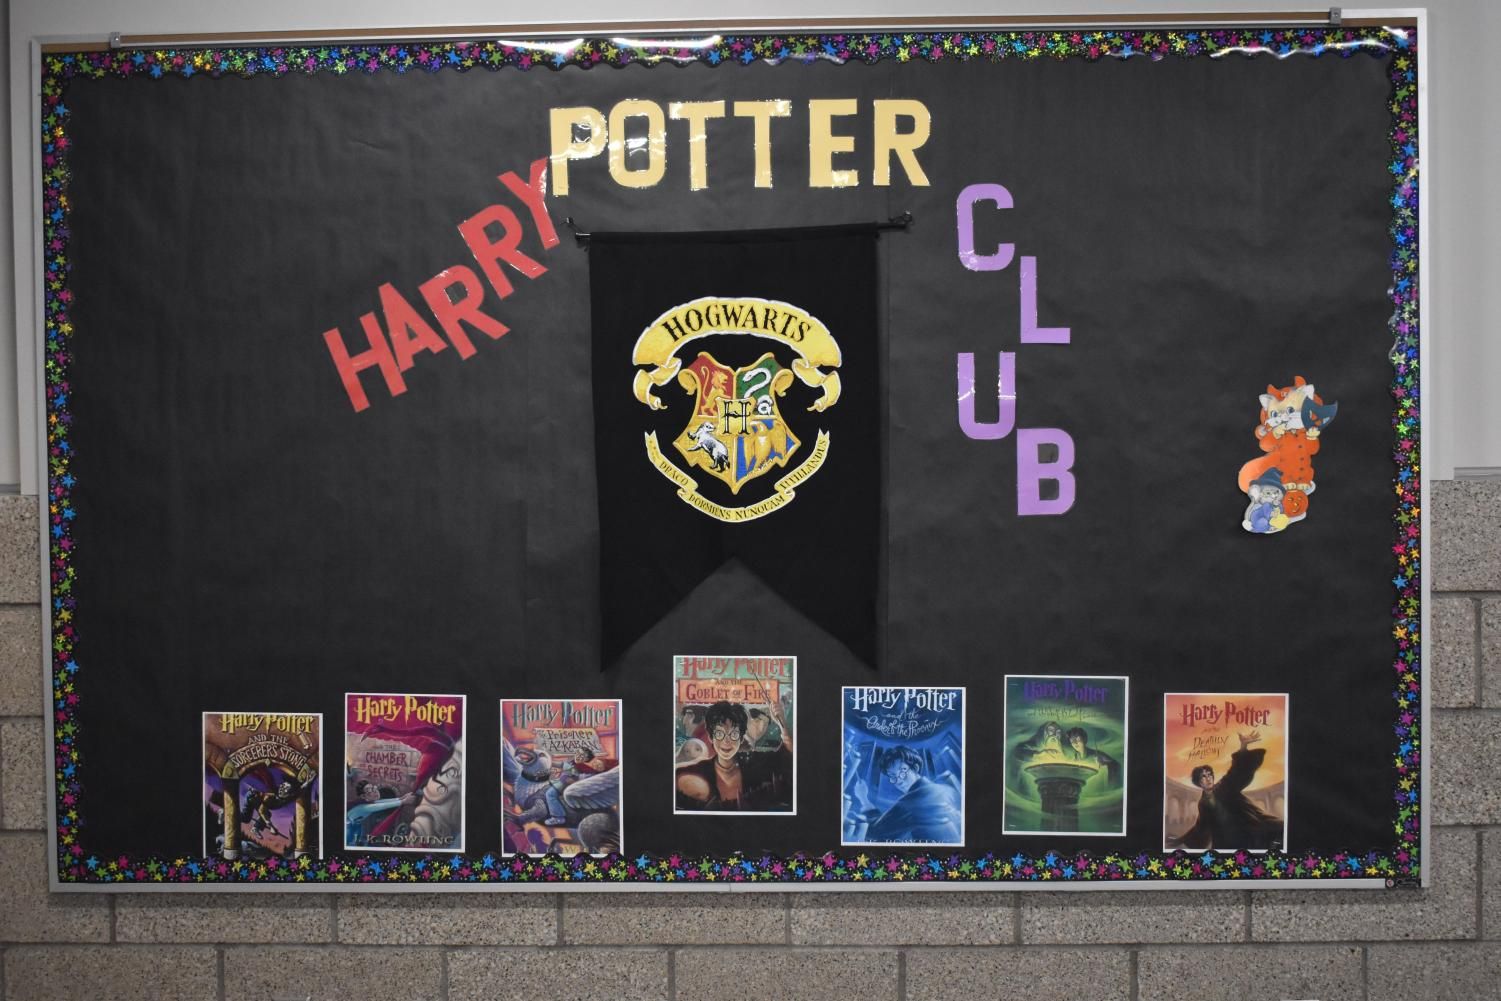 The Harry Potter billboard advertising the club outside the club room 2137